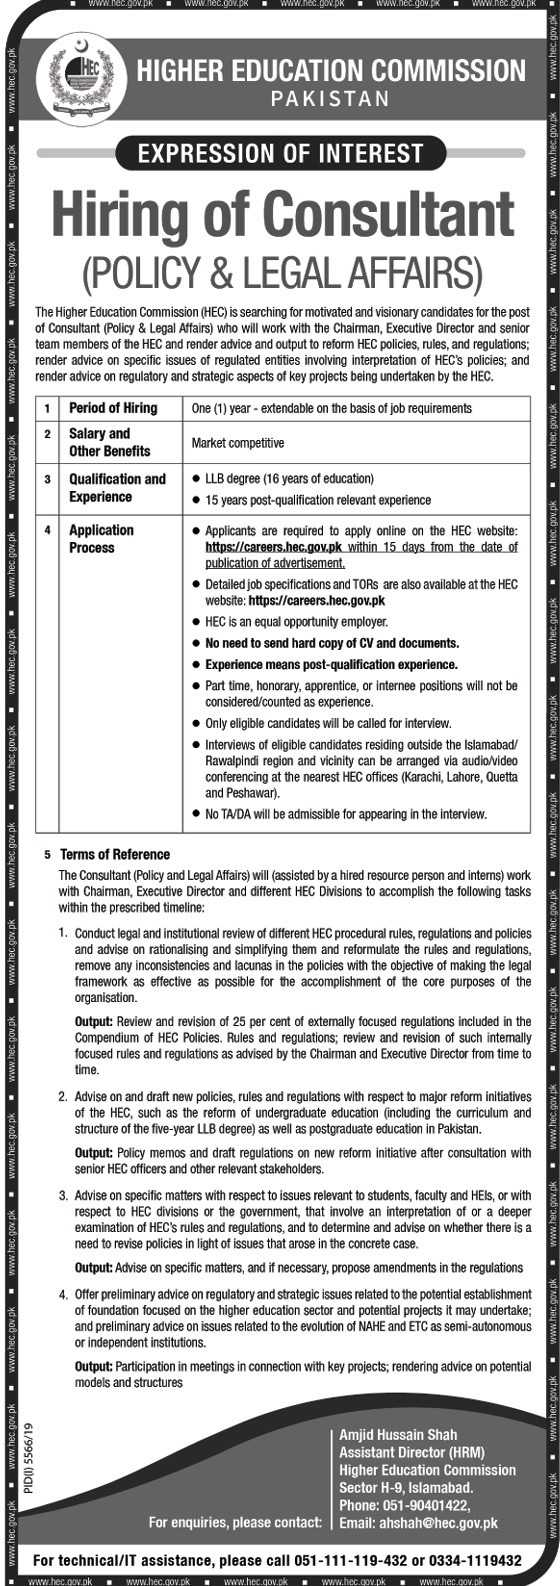 Jobs in Higher Education Commission Pakistan 2020